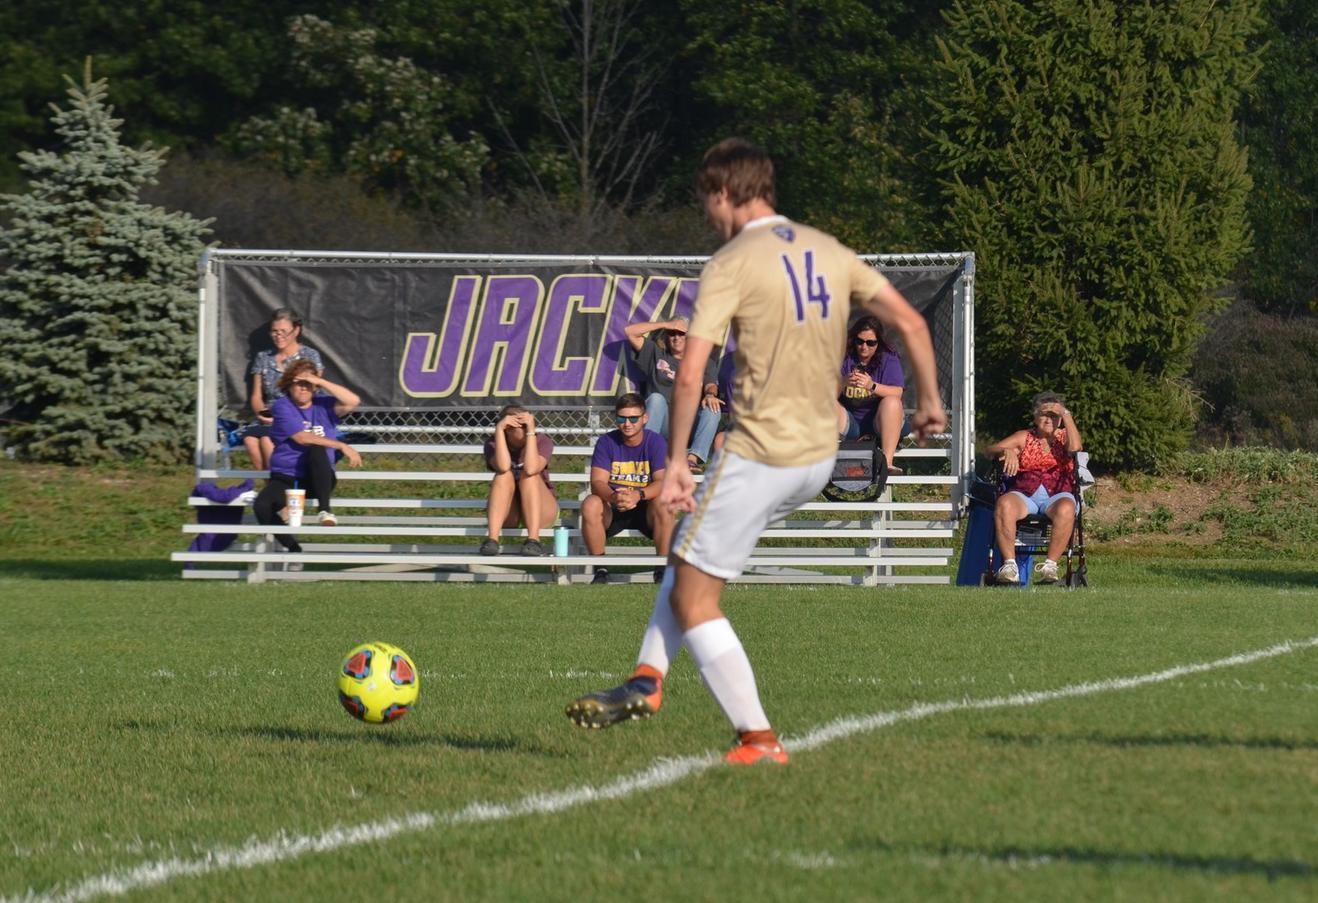 Men's Soccer Falls Short to Edgewood in Overtime